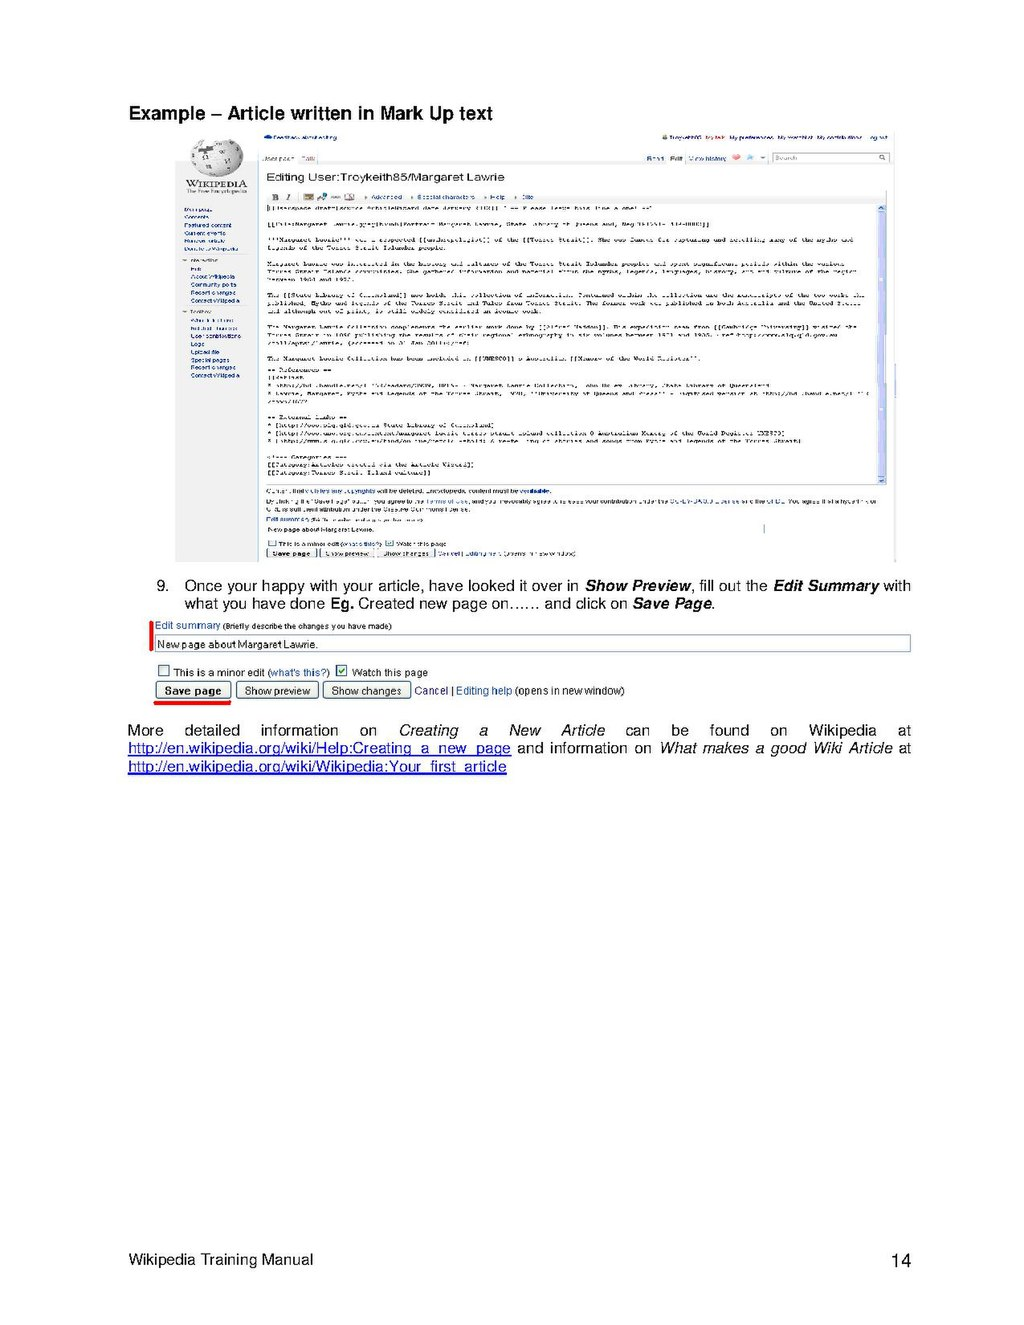 page wikipedia training manual pdf 14 wikisource the free online